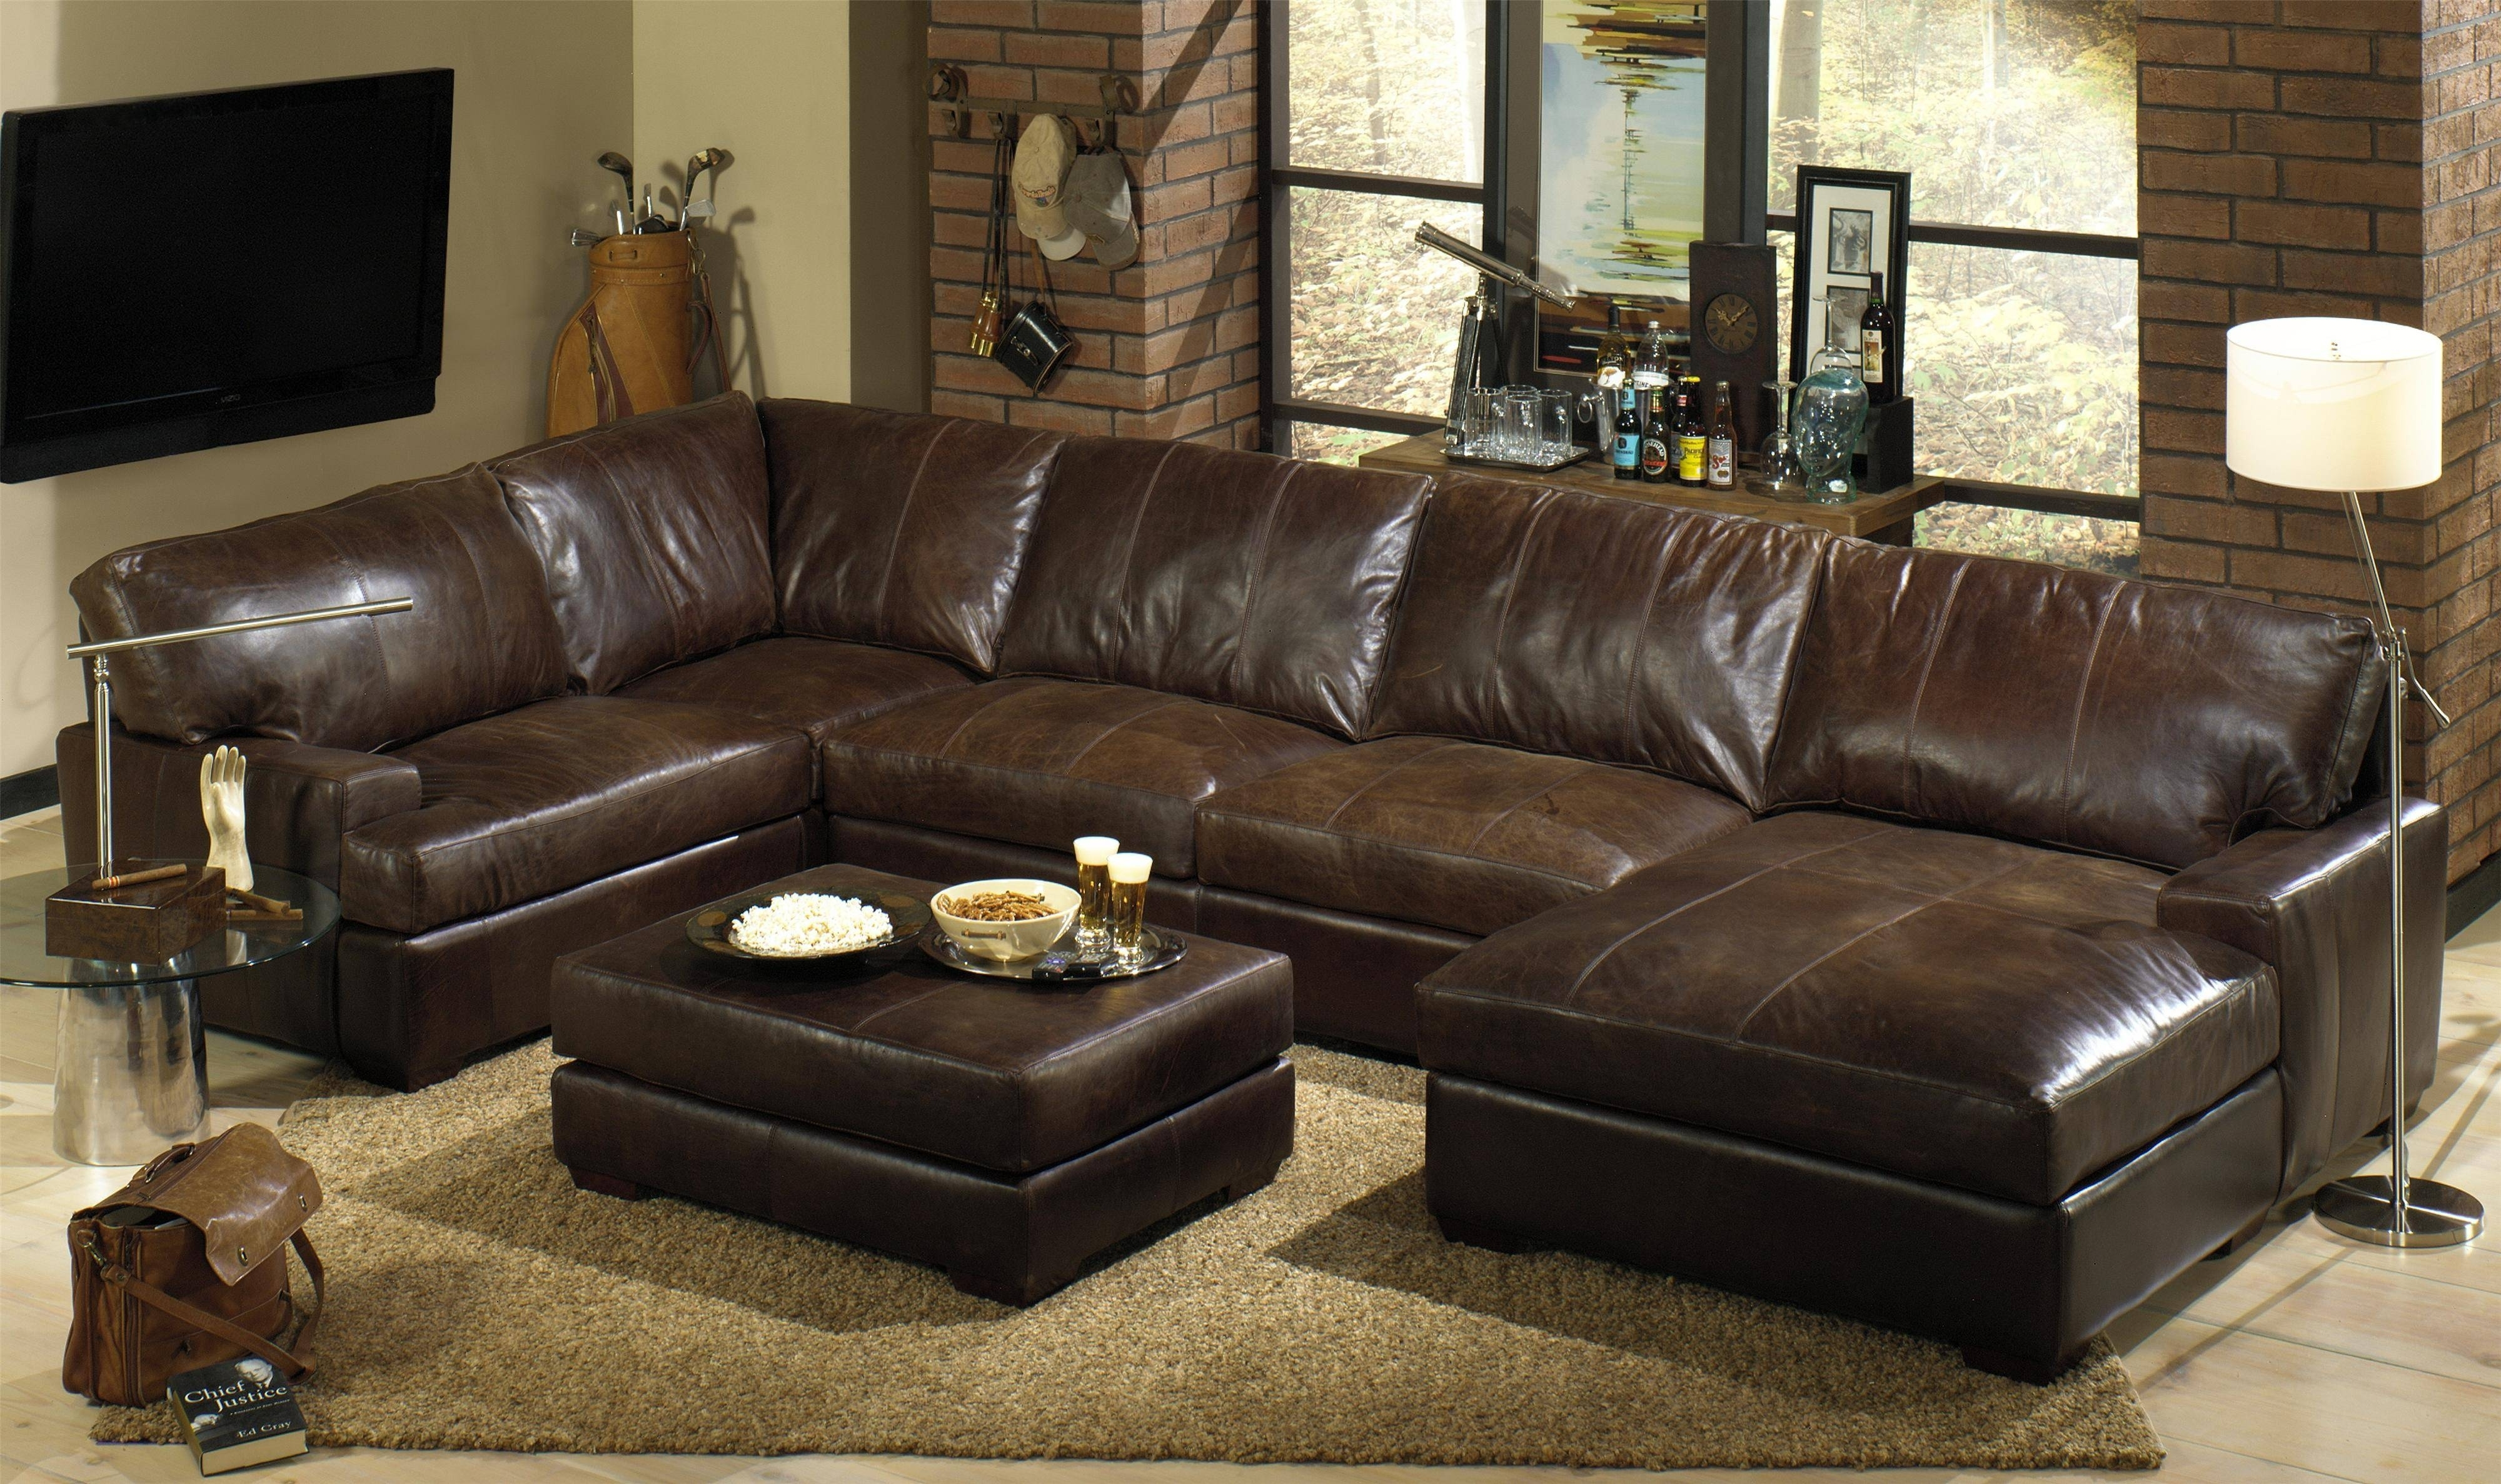 Best Sectional Sofa With Oversized Ottoman 66 About Remodel Sofas Within Sectional Sofas With Oversized Ottoman (View 10 of 10)